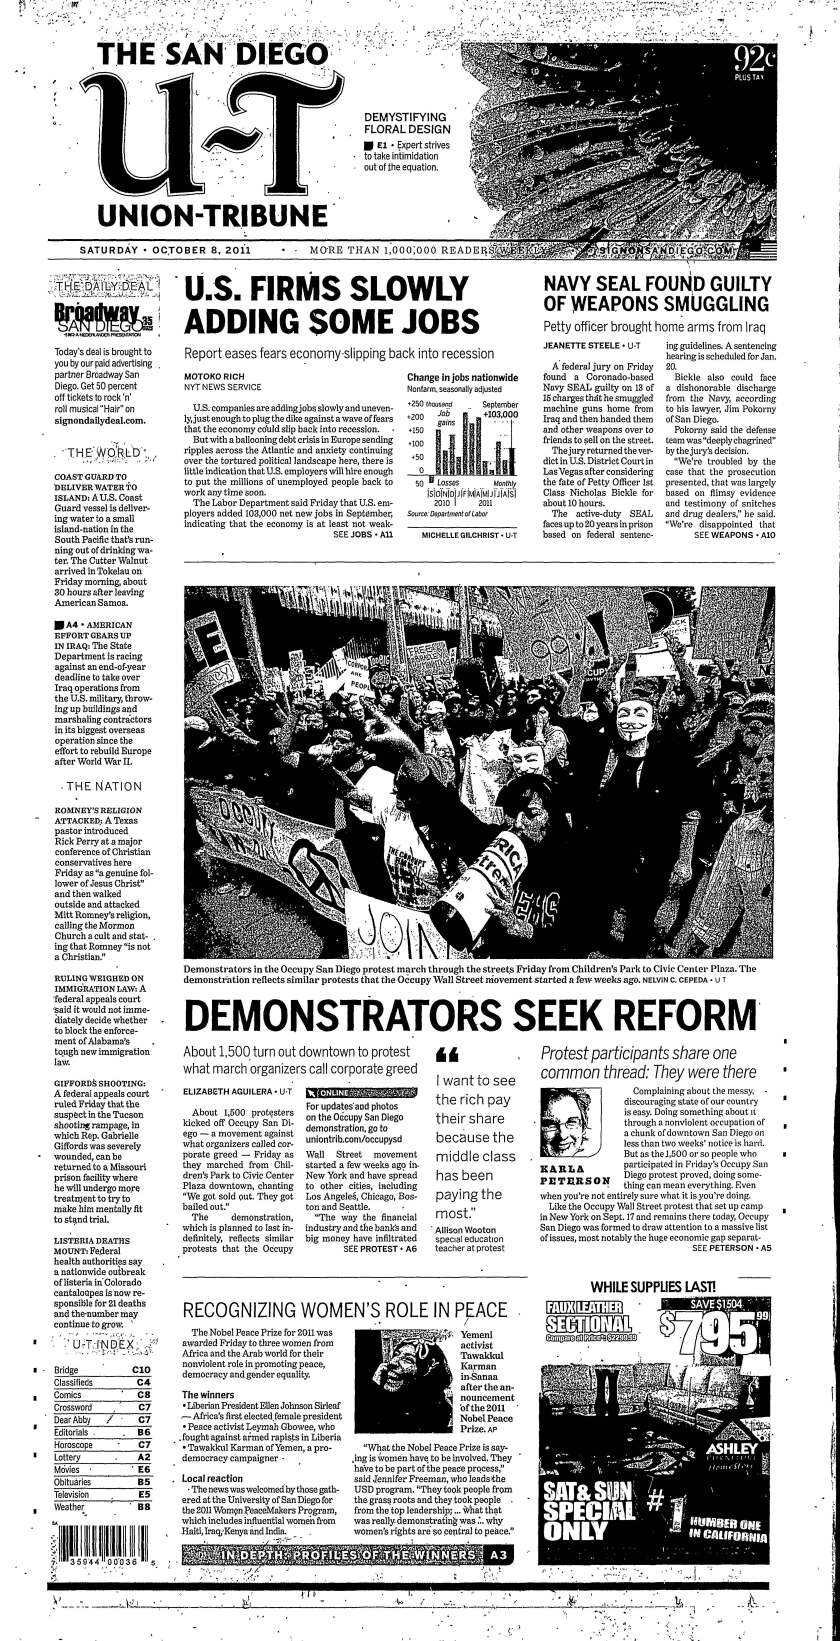 Front page of U-T San Diego, Oct. 8, 2011.